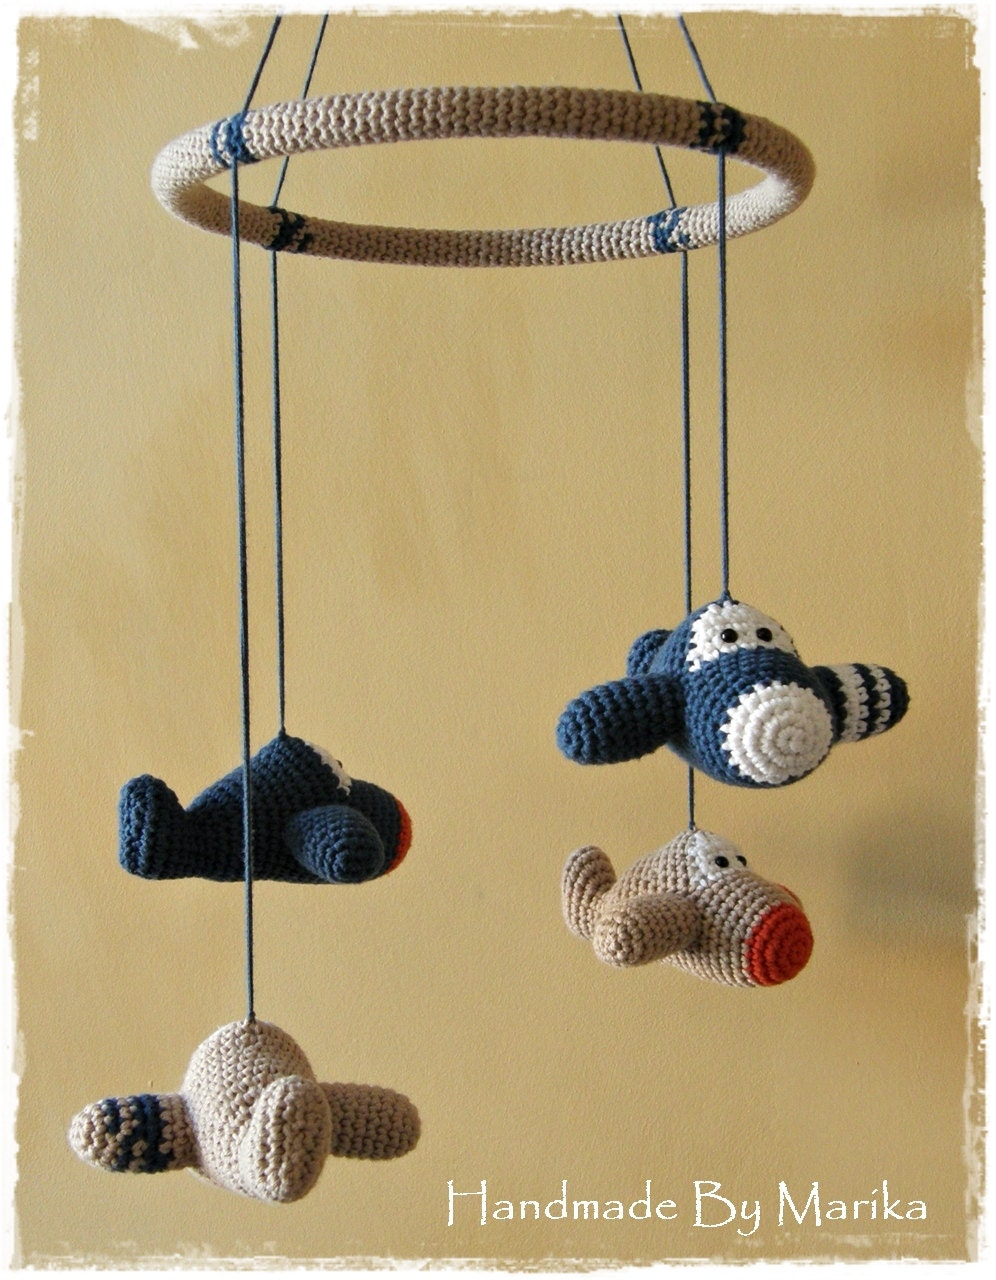 A baby mobile is a toy-like object that either attaches to your child's crib (on the side) or is ceiling mounted. It generally moves slowly, has baby-friendly figures attached to it, and it plays soft, sweet tunes at nap and bedtime.